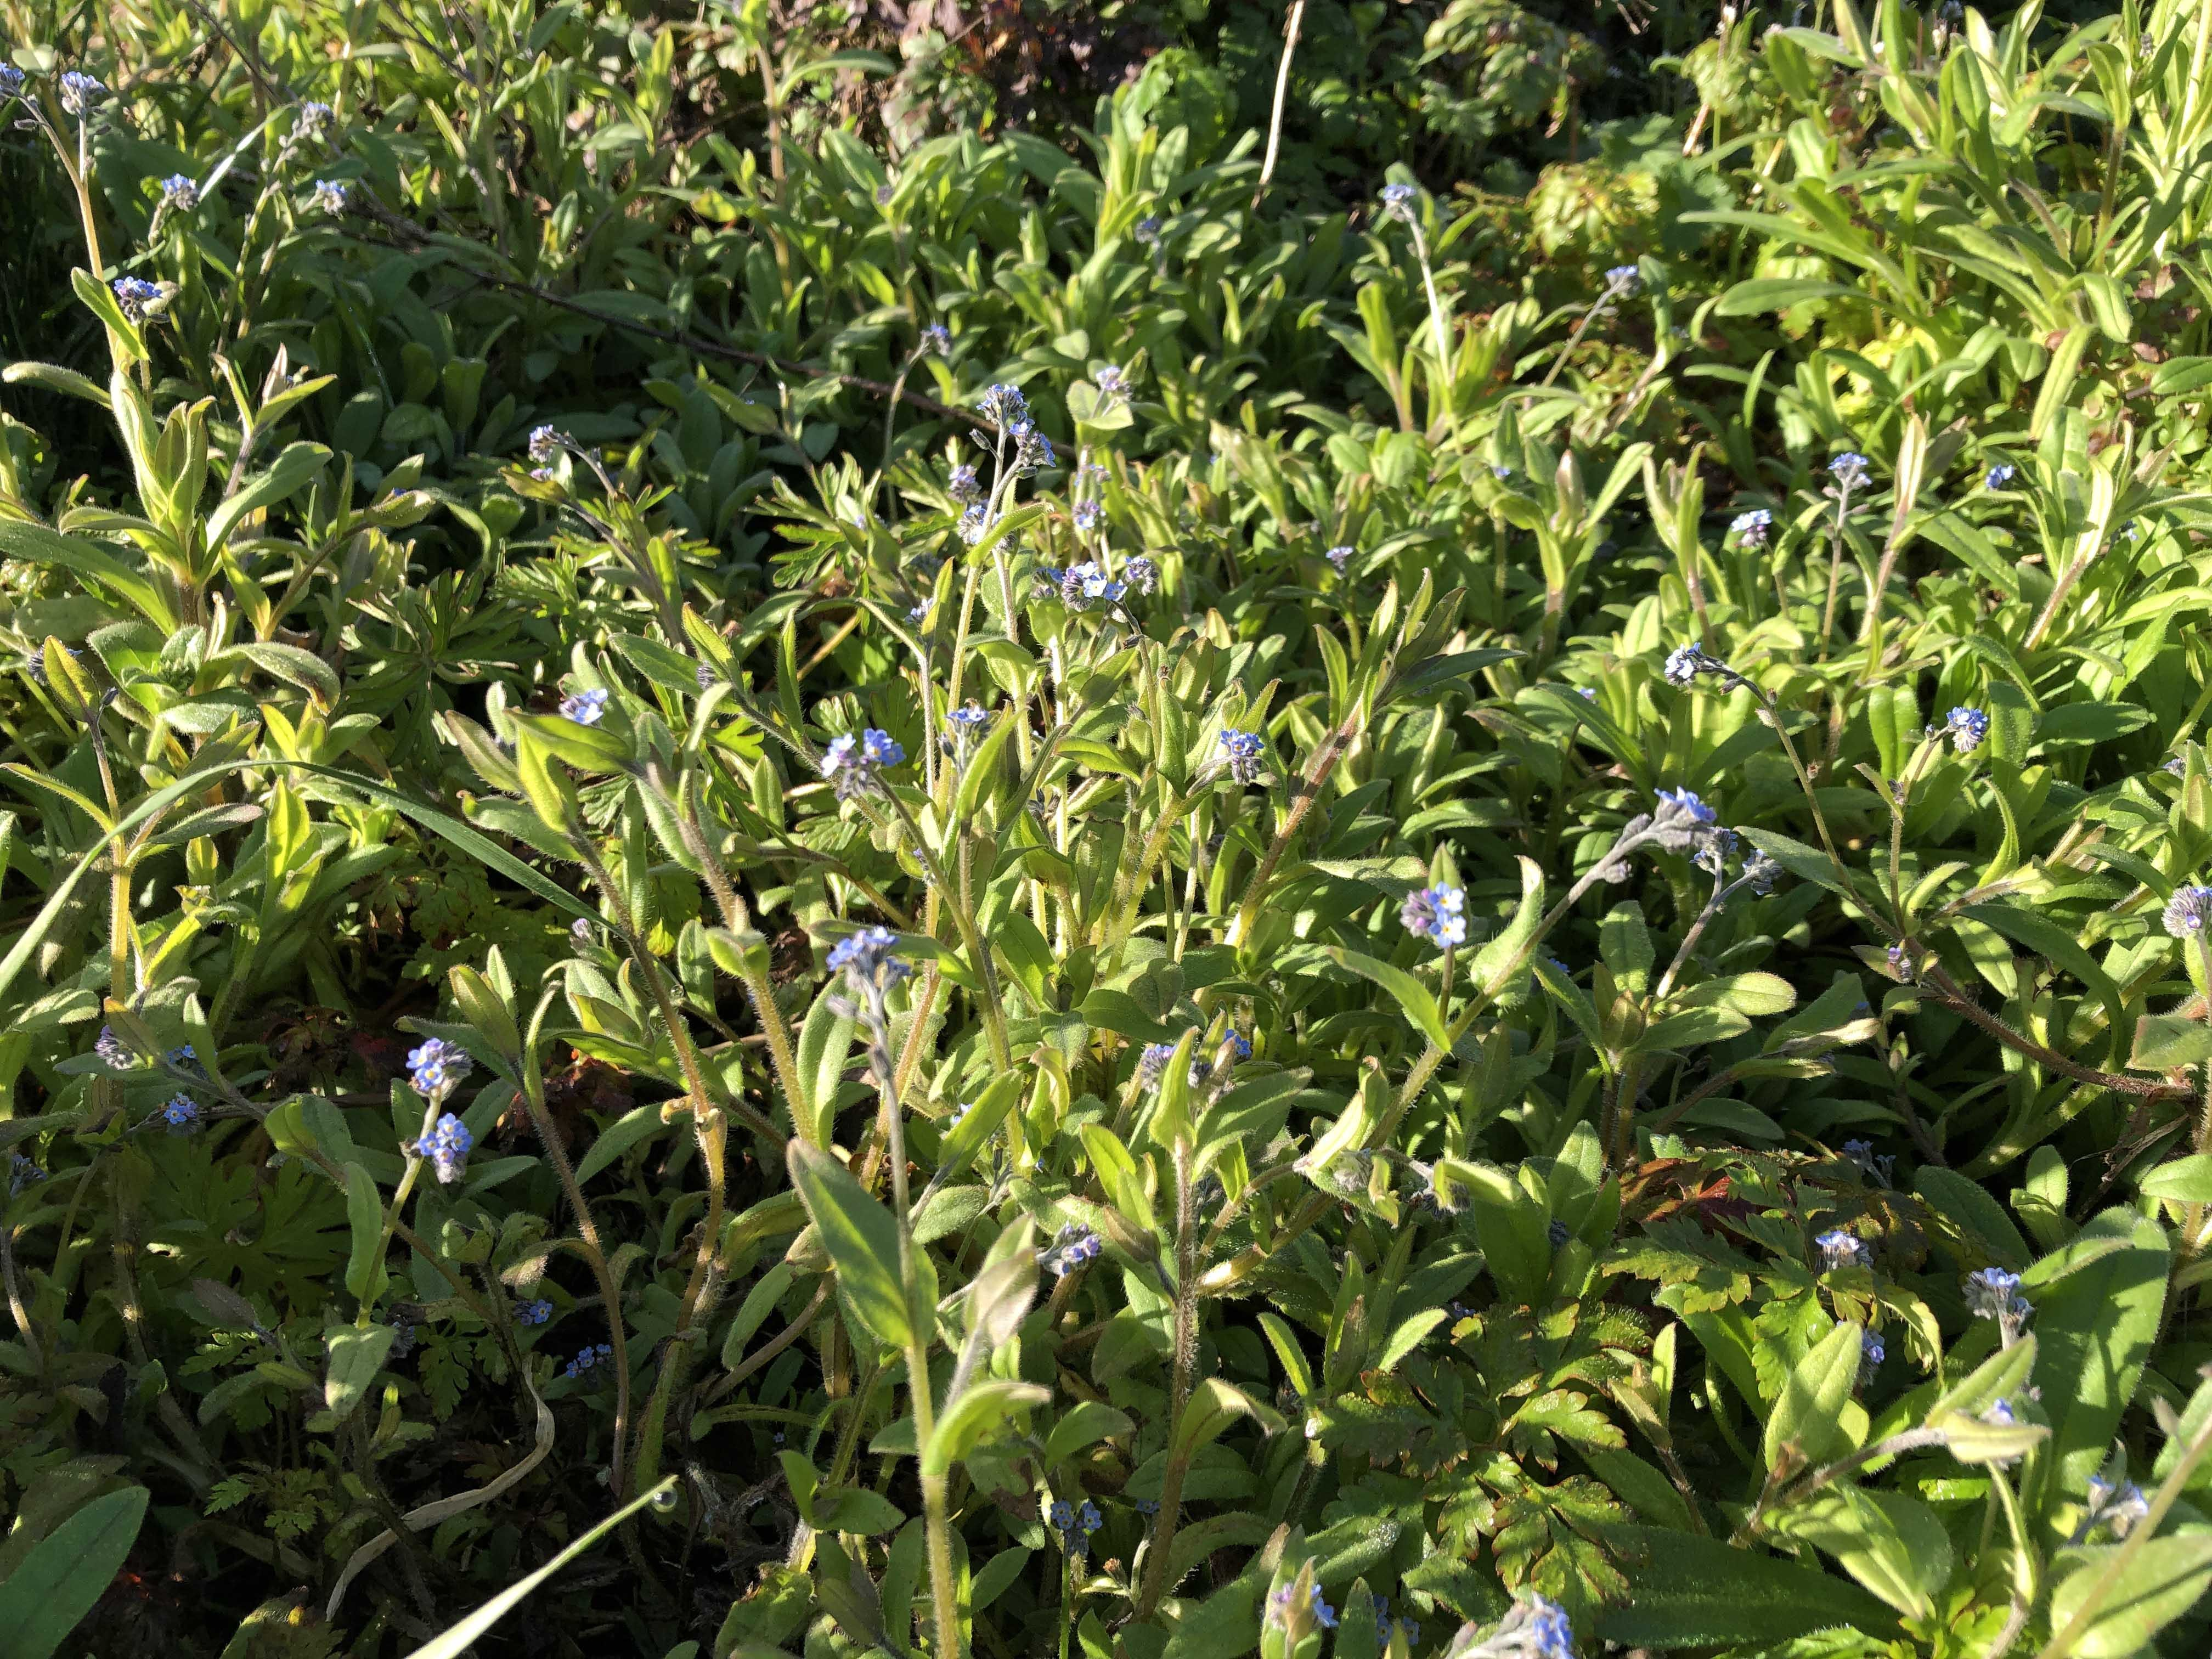 April 14, 2021 - Chinese Forget-Me-Not / Cynoglossum amabile